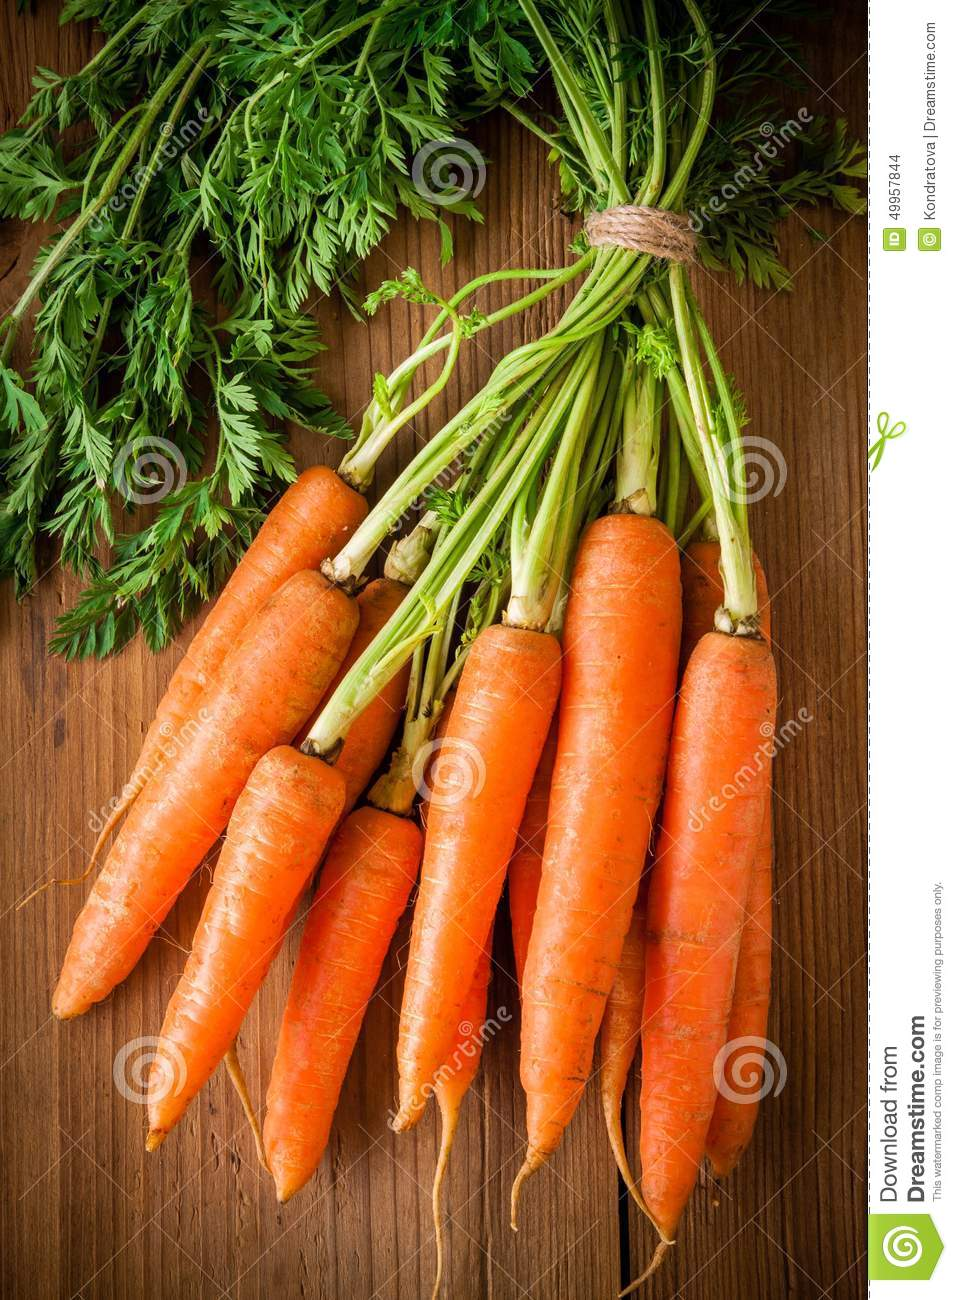 Fresh organic carrots bunch on wooden background